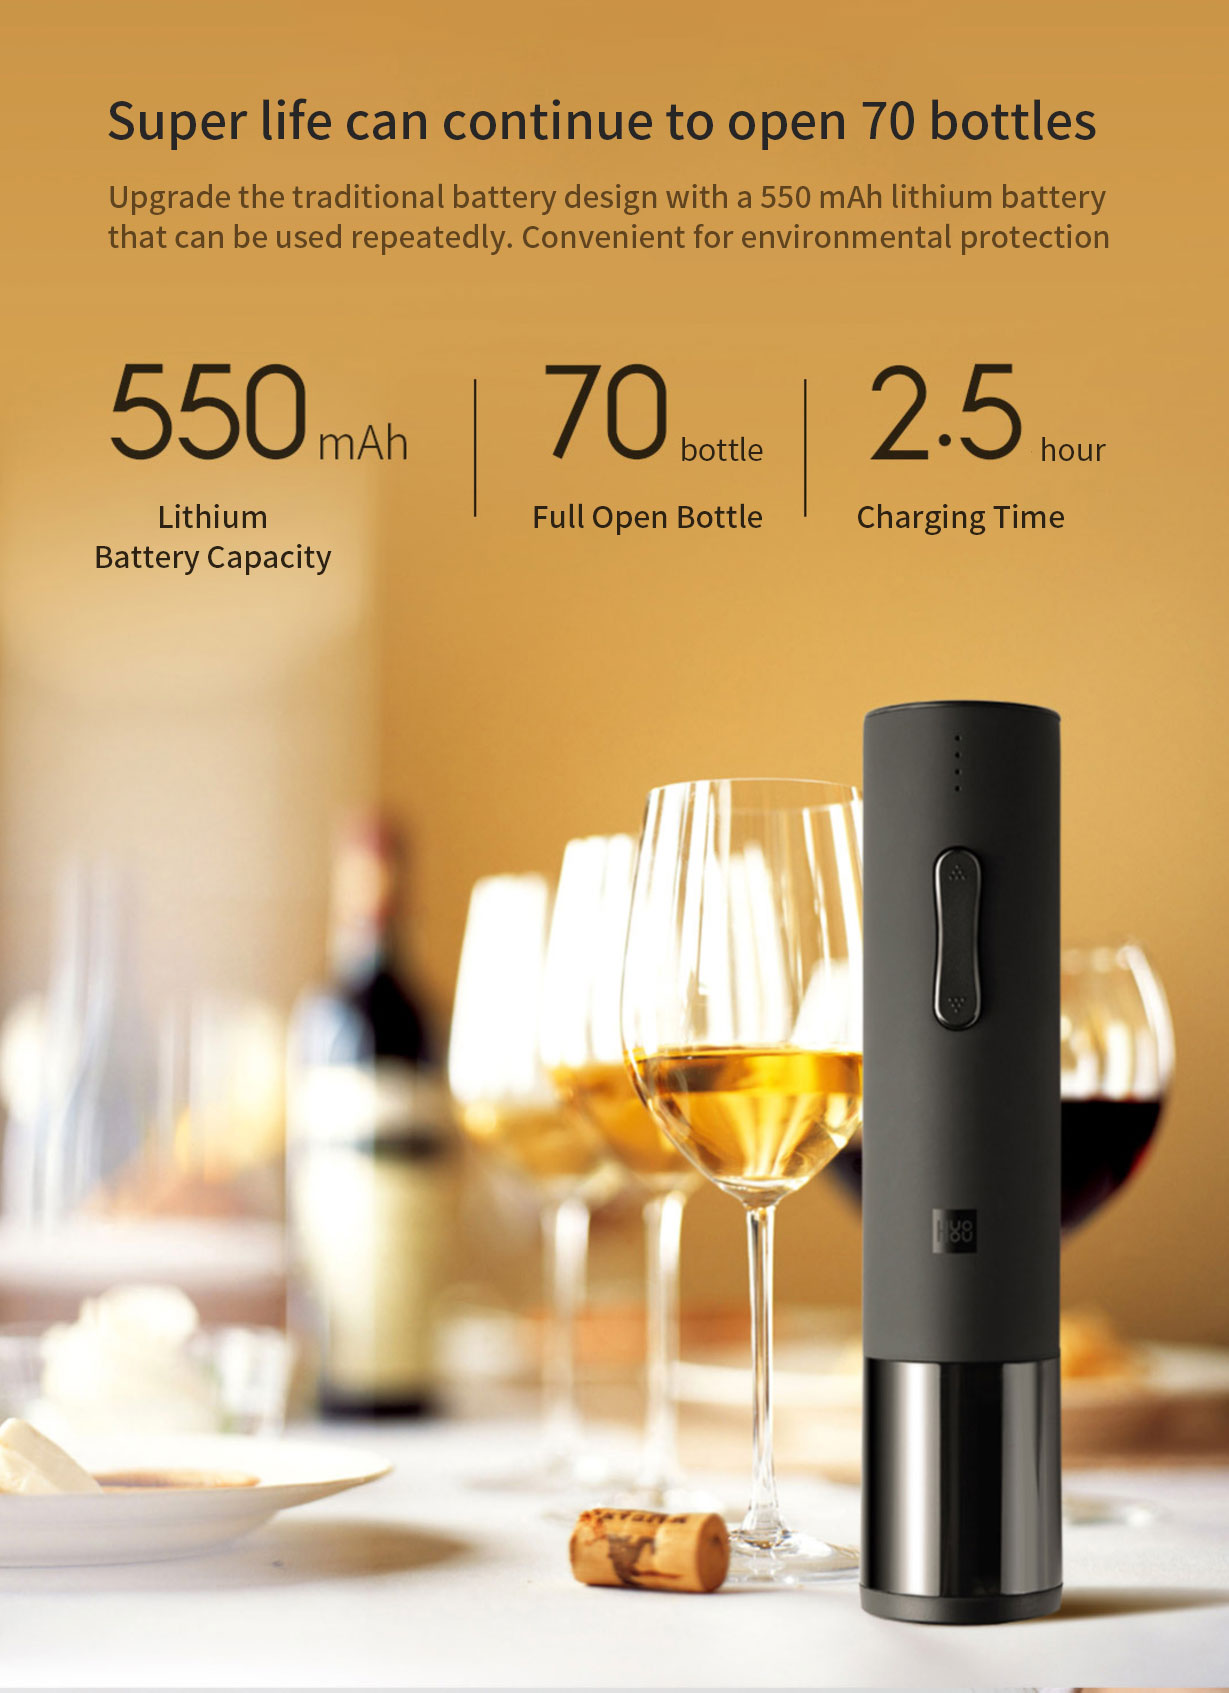 Huohou Automatic Bottle Opener Kit Electric Corkscrew With Foil Cutter From Xiaomi Youpin